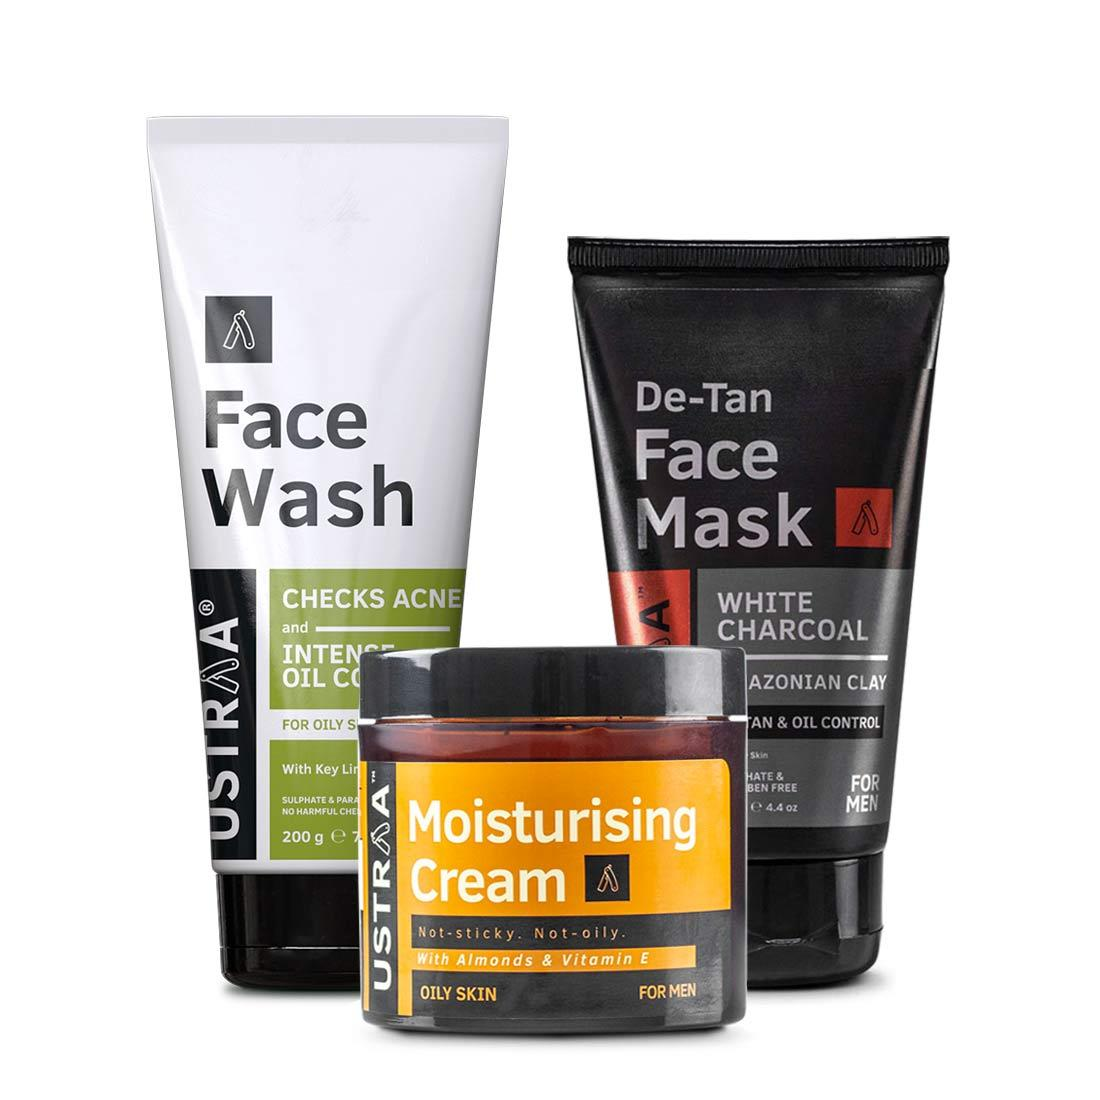 Ustraa Complete Oily Skin Care Kit For Men (Set of 3): Oil Control Face Wash, Moisturizing Cream, and De-Tan Face Mask